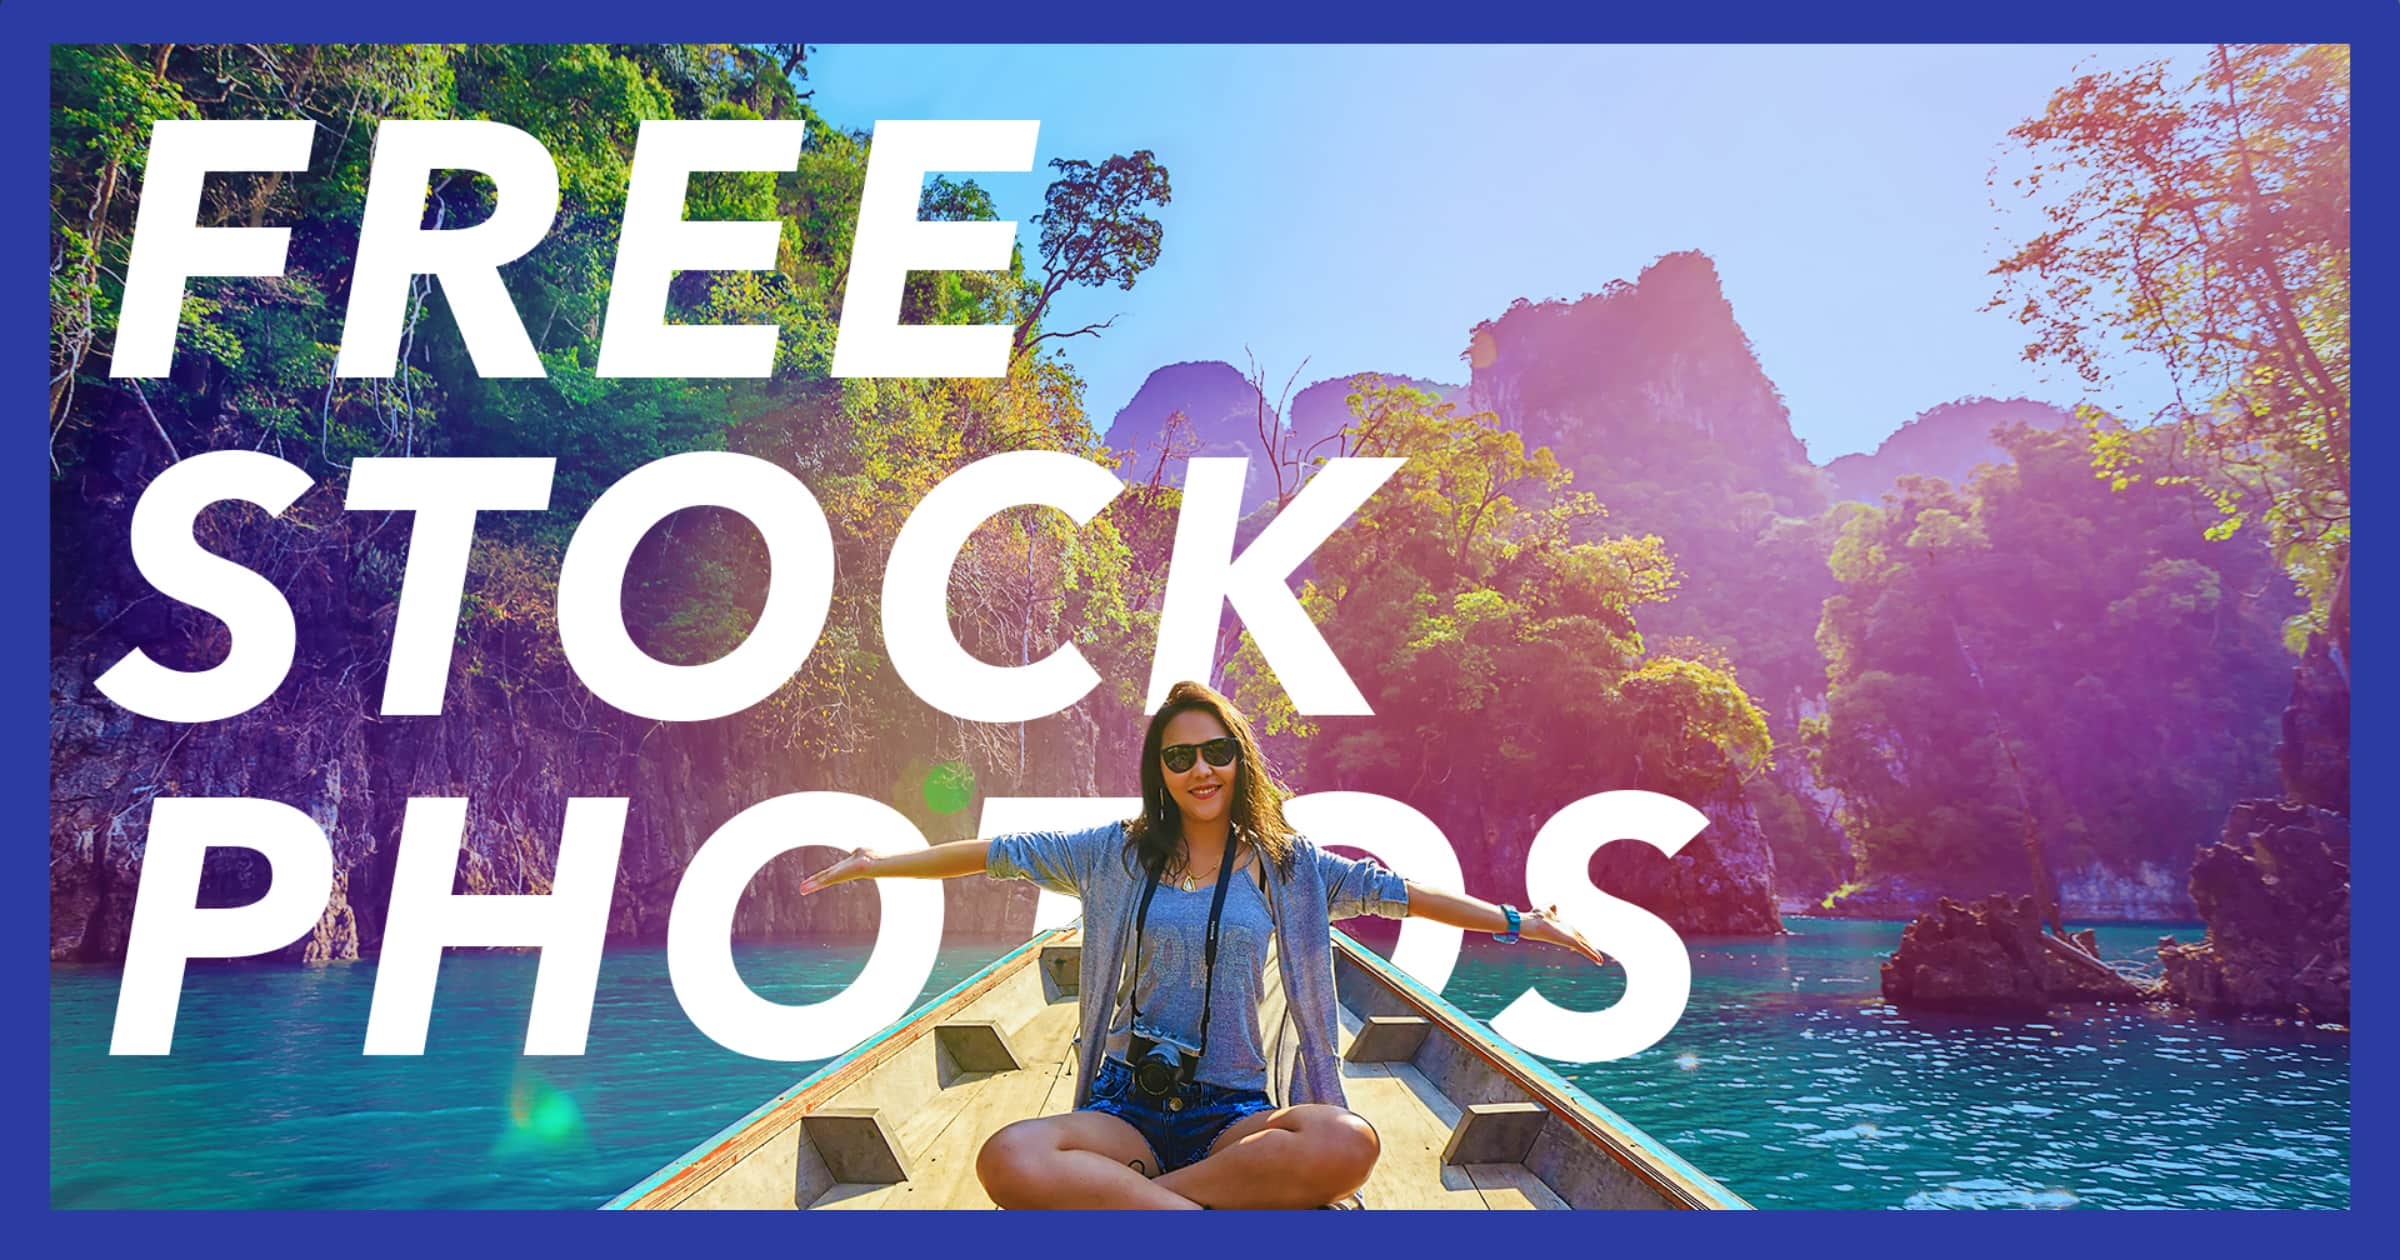 A picture of a woman with her arms outstretched on a boat in a tropical paradise with the words free stock photos behind her to showcase the best-royalty free photo resources available